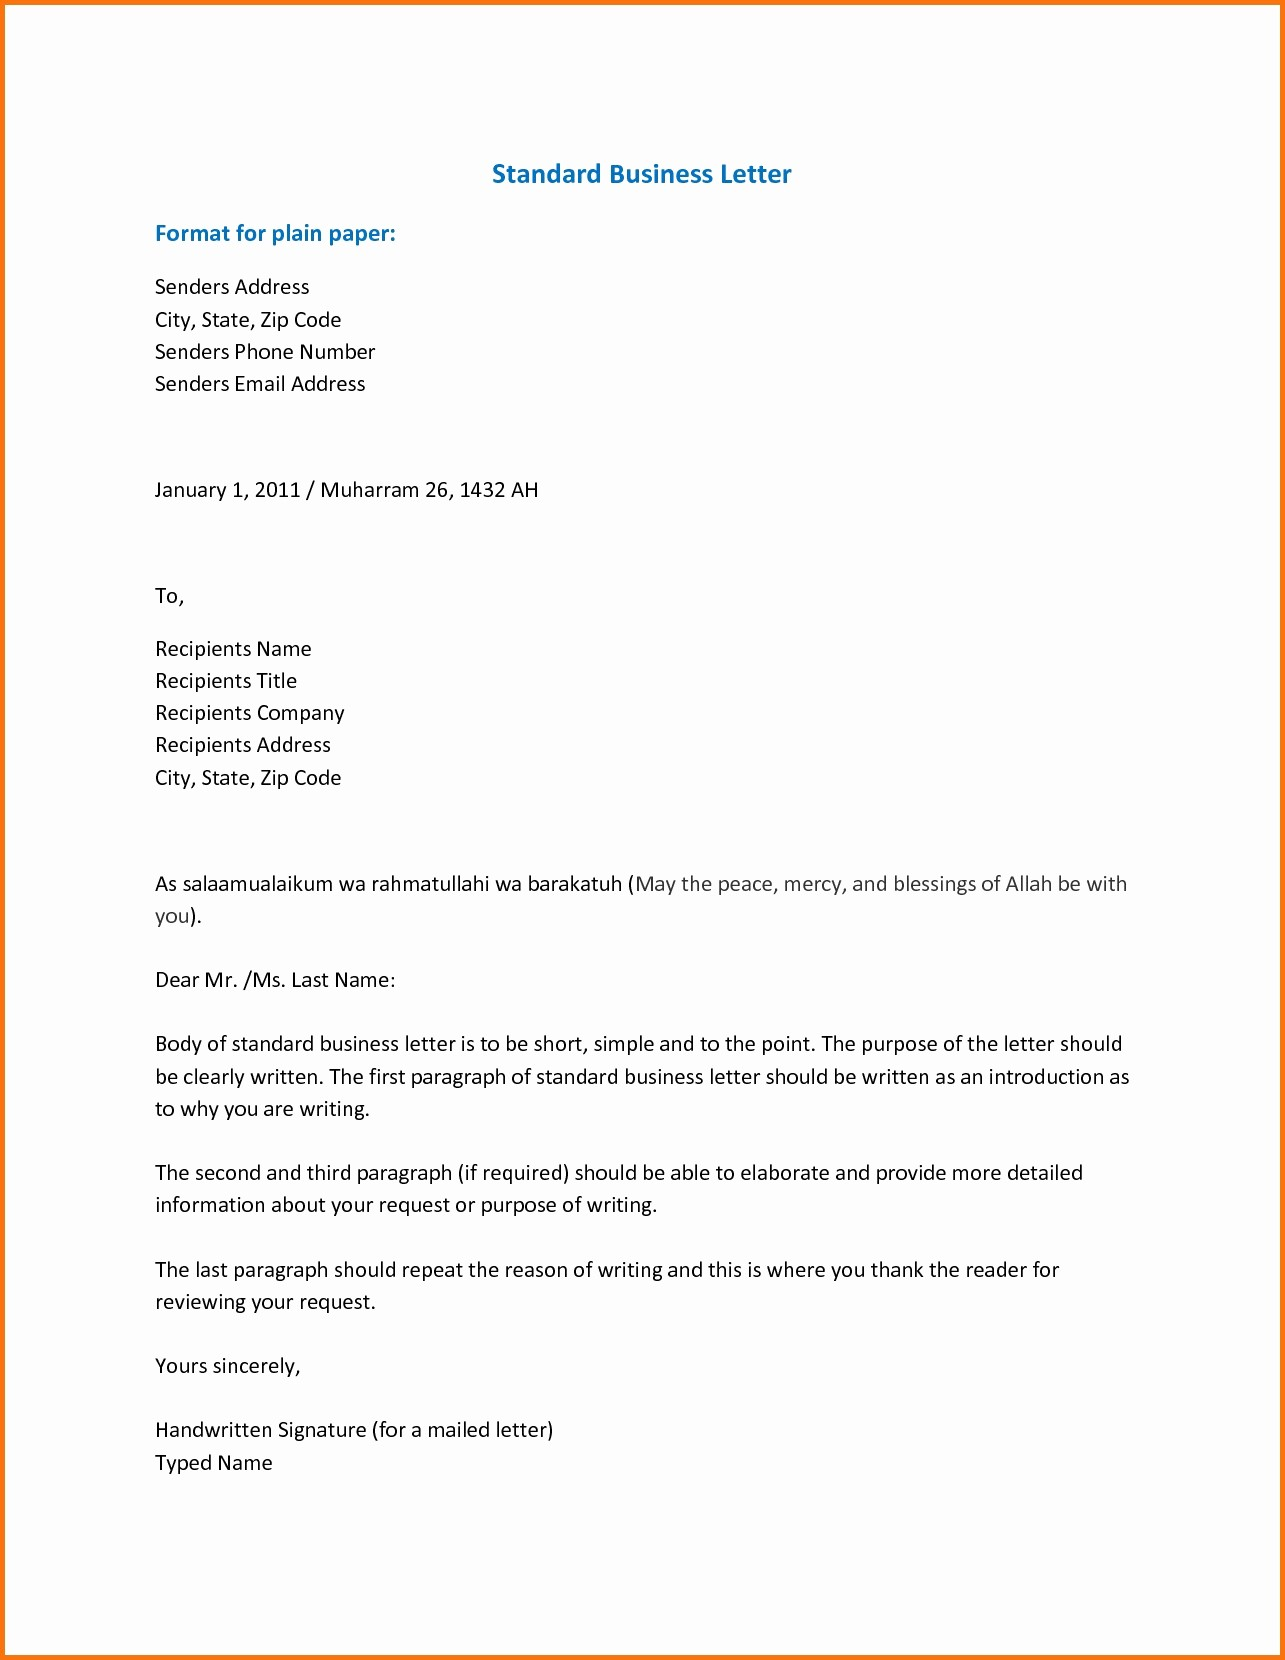 Standard Business Letter format Template Beautiful Free Printable Standard Business Letter format Template